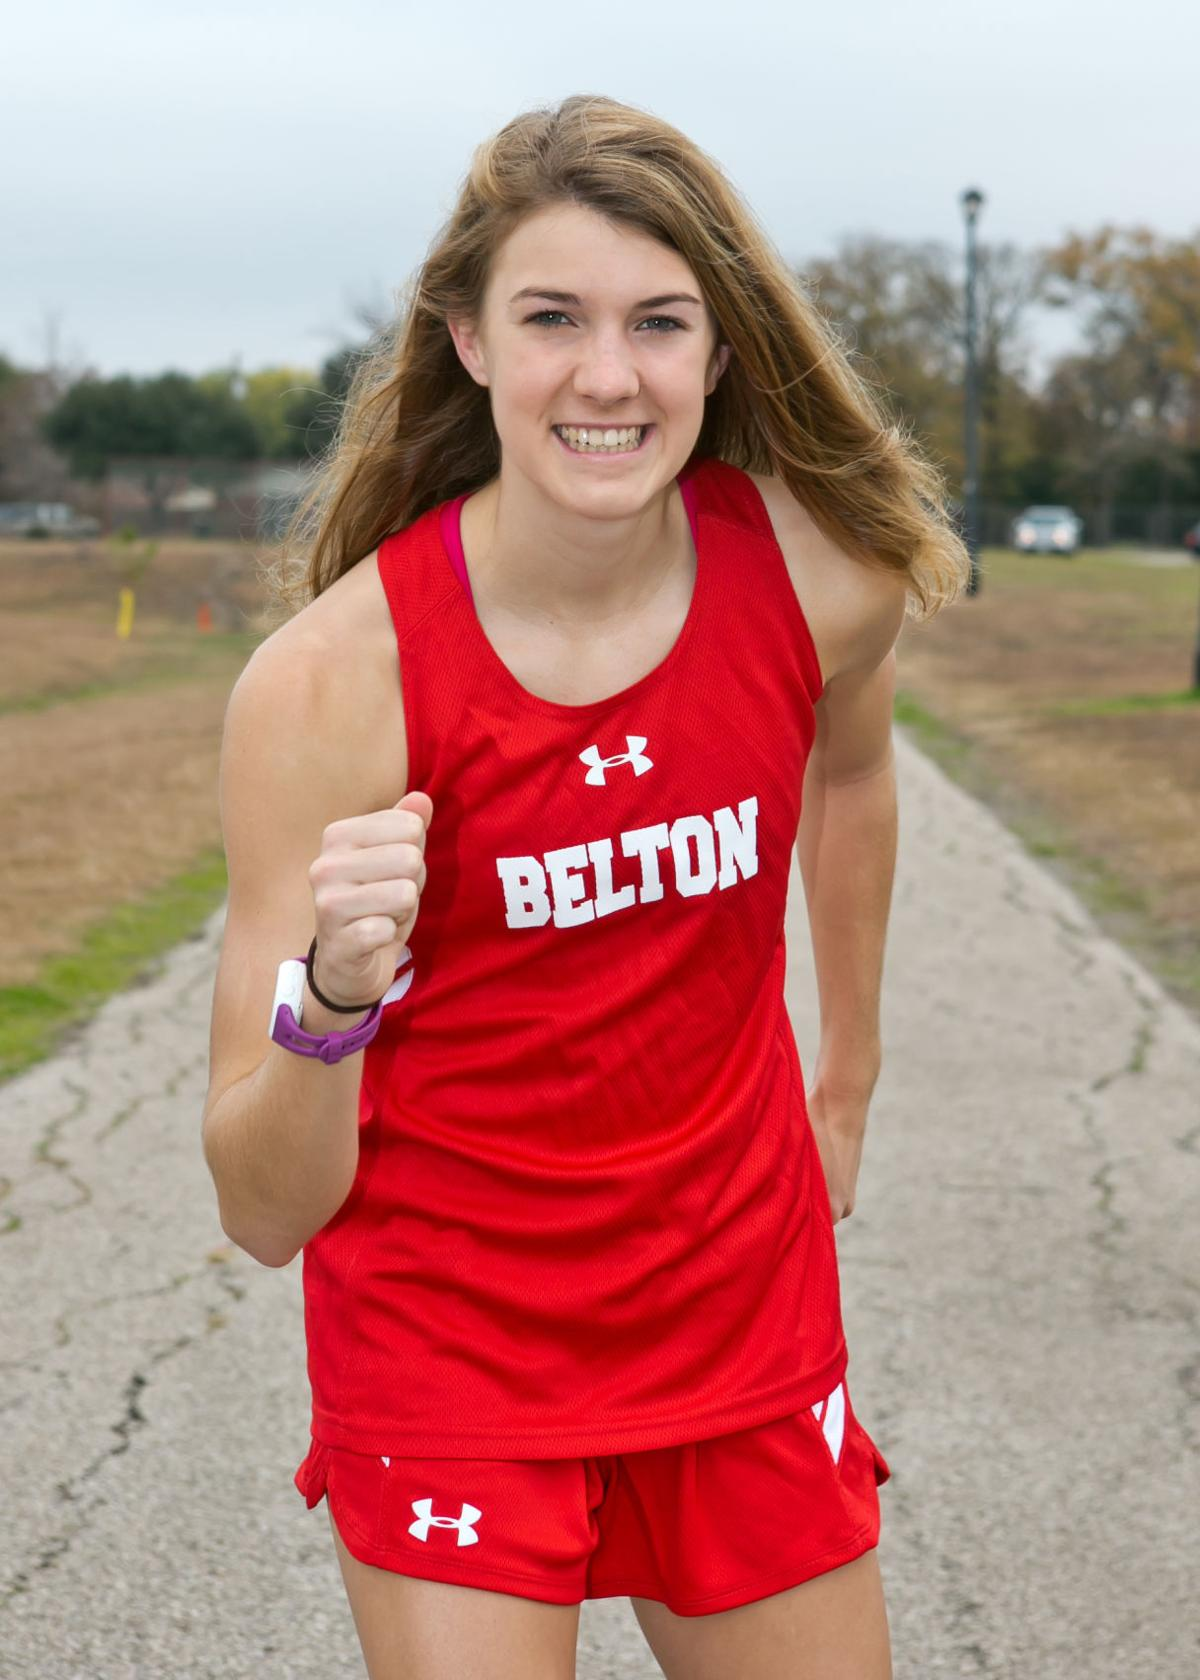 2015 KDH ALL-AREA MOST OUTSTANDING RUNNER-Brooke Gilmore